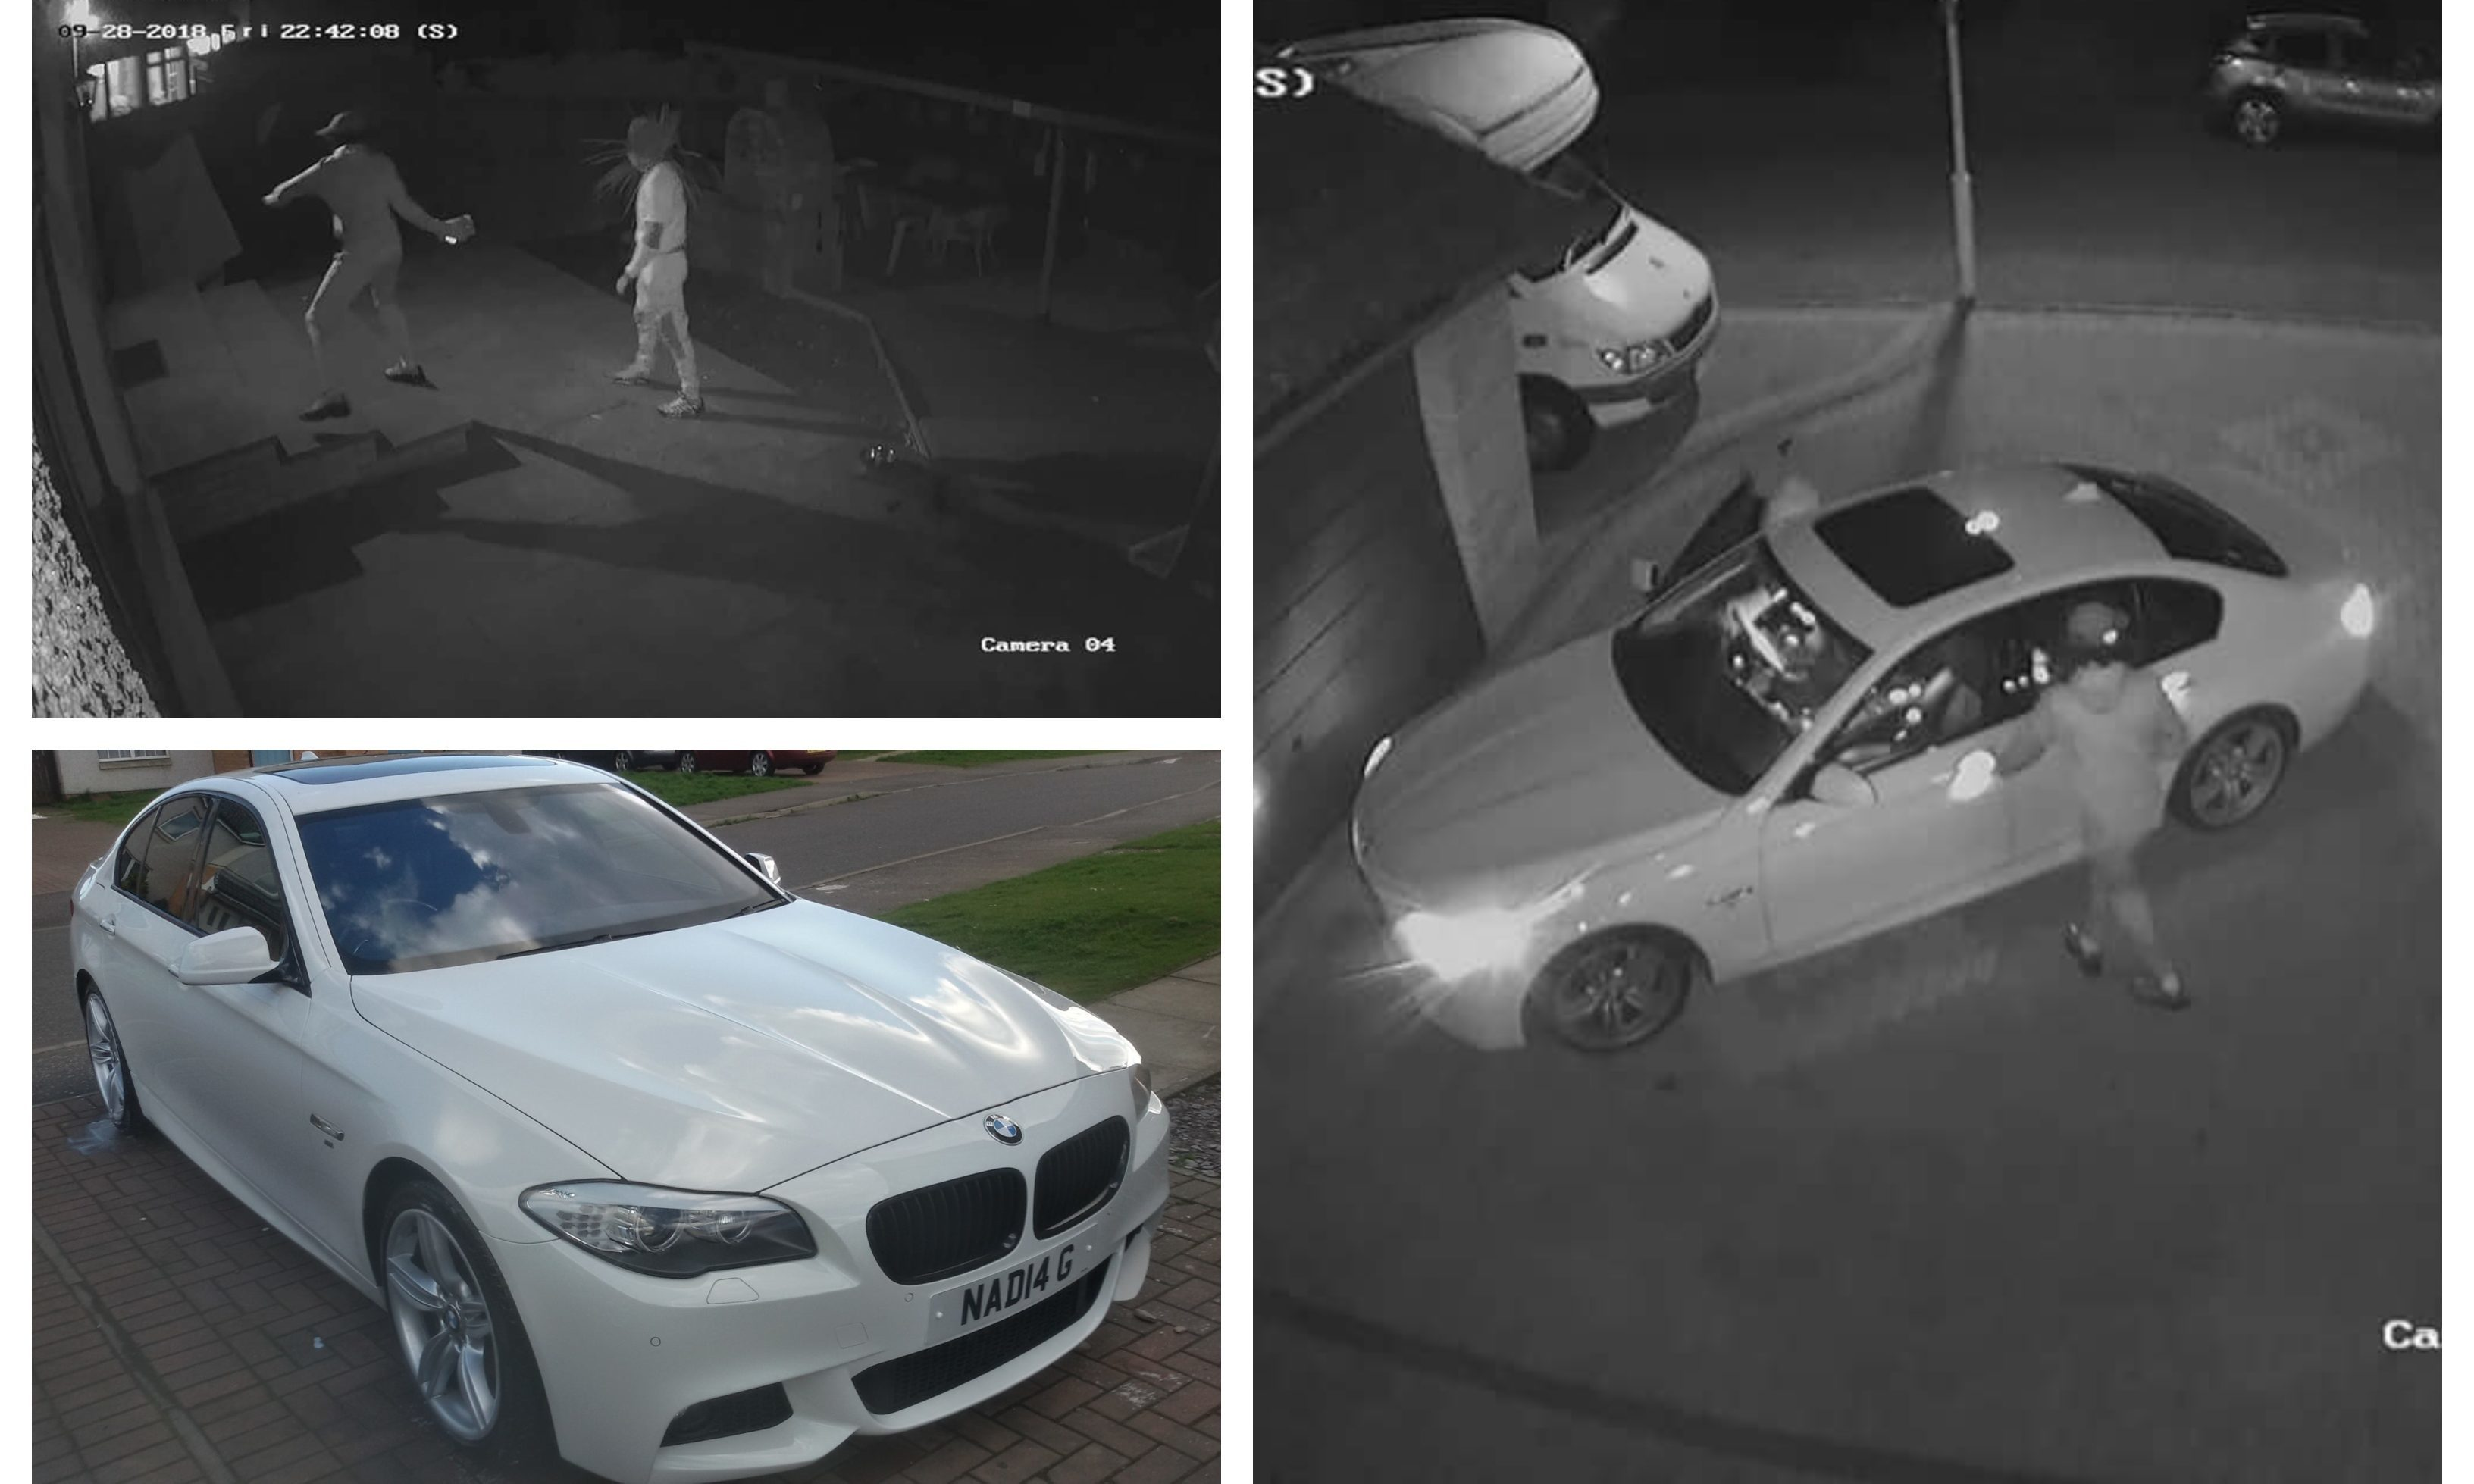 The BMW 535 M Sport which was stolen from Dunvegan Avenue on September 28.